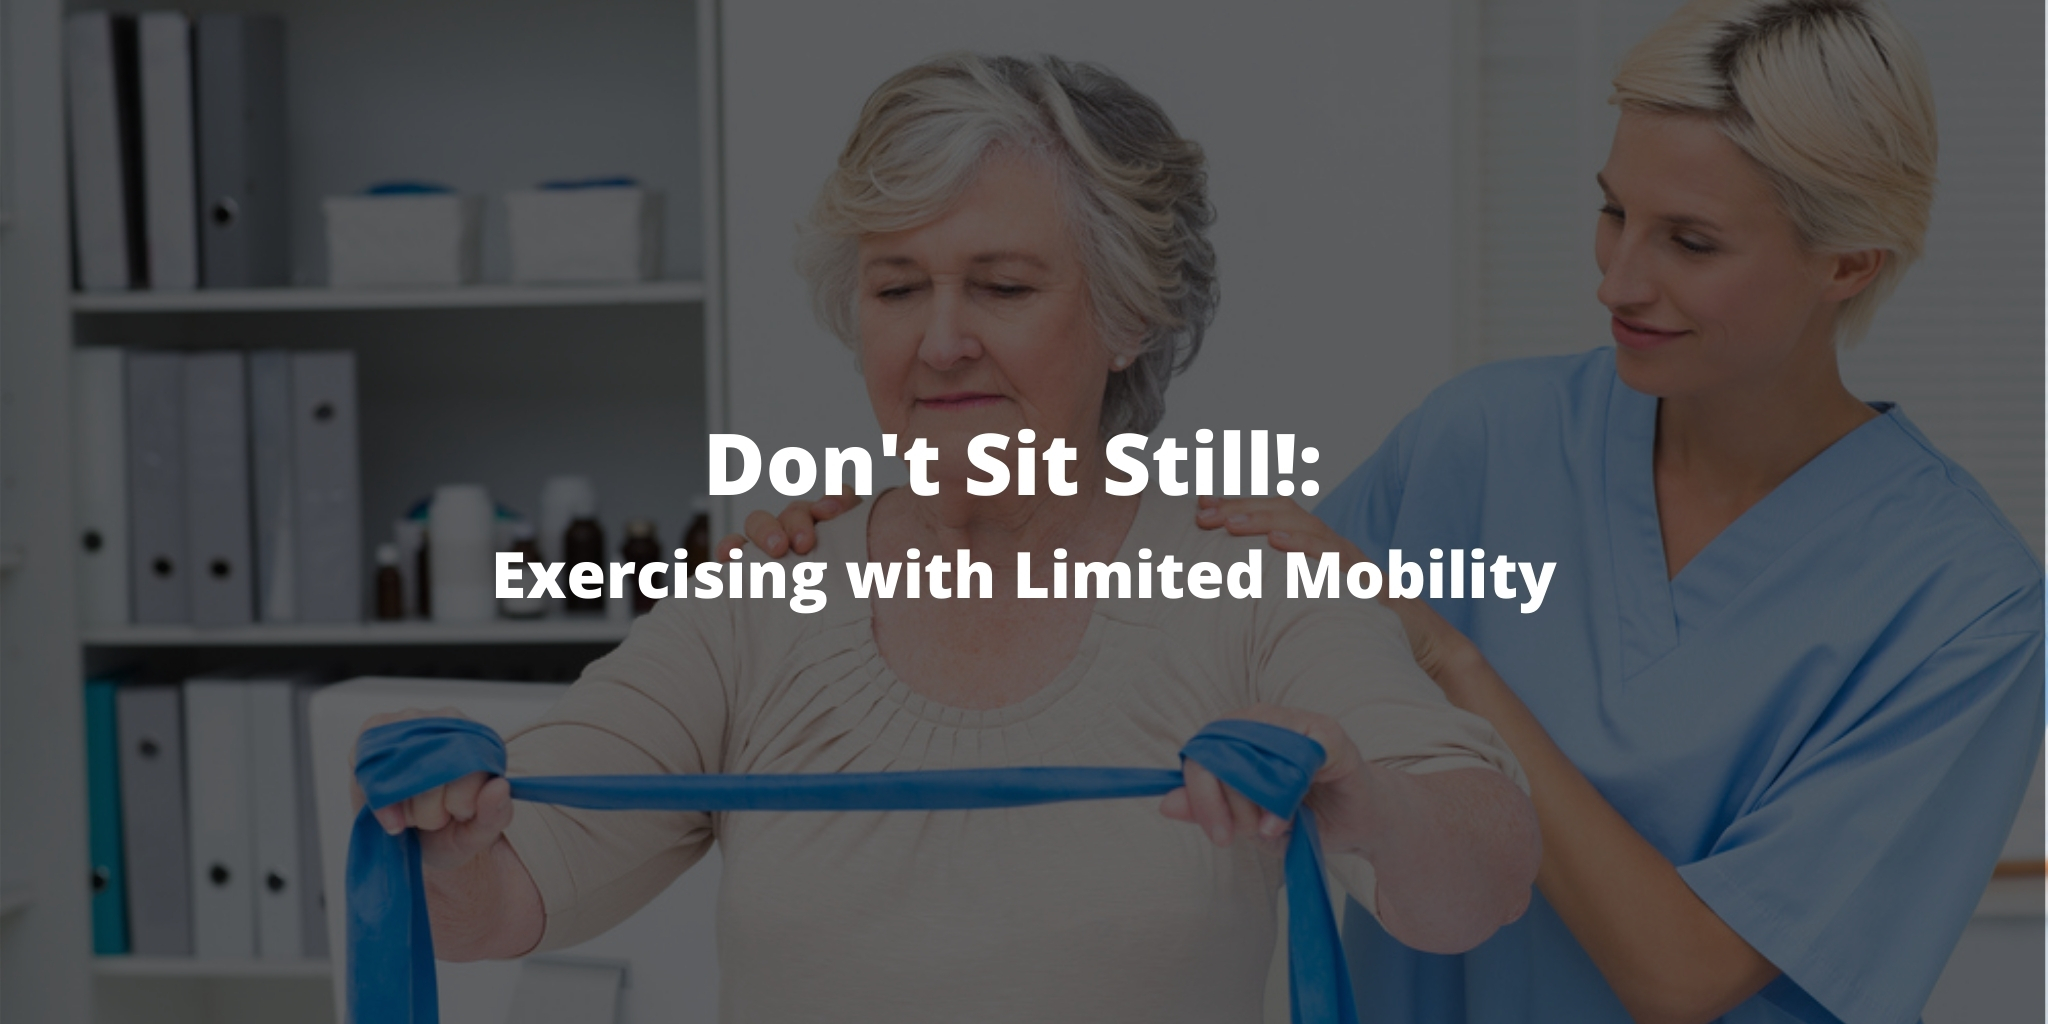 Don't Sit Still!: Exercising with Limited Mobility